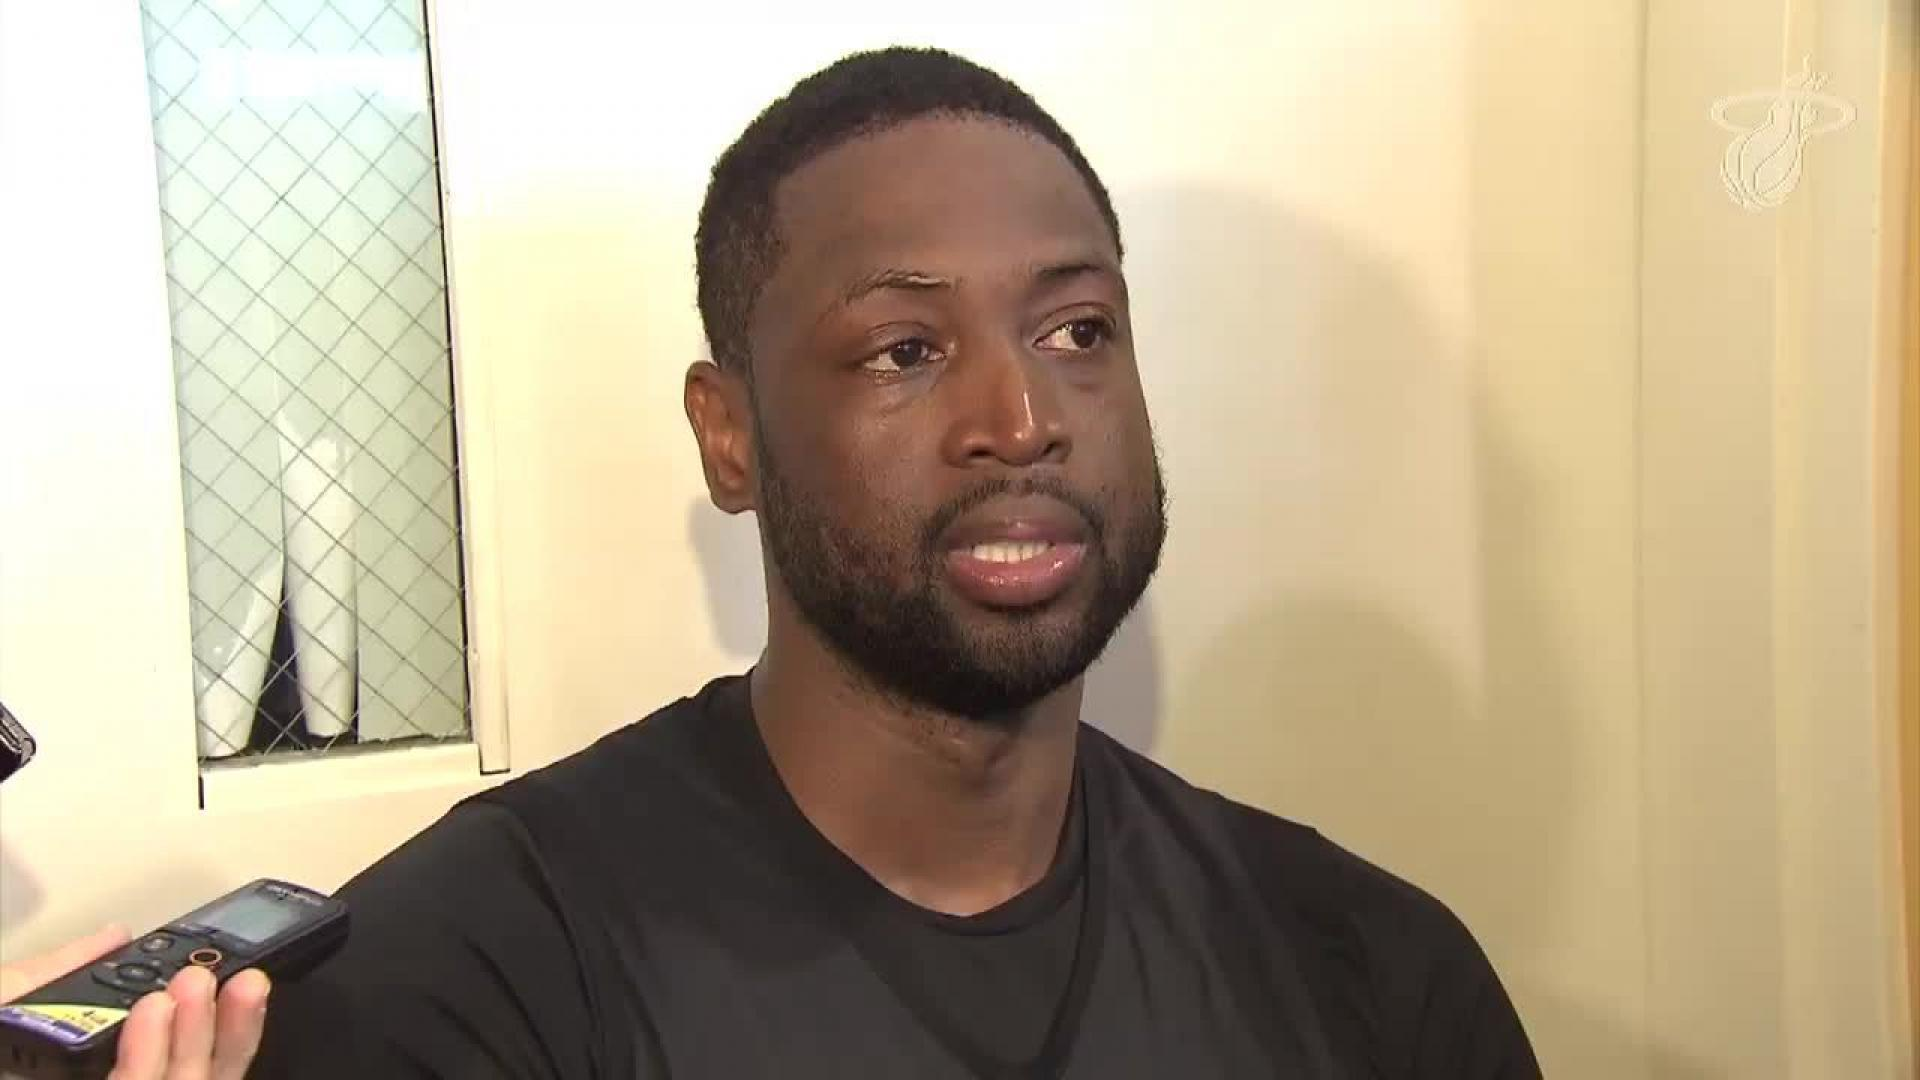 Dwyane Wade Responds to Parkland Shooting Victim Being Buried in His Jersey